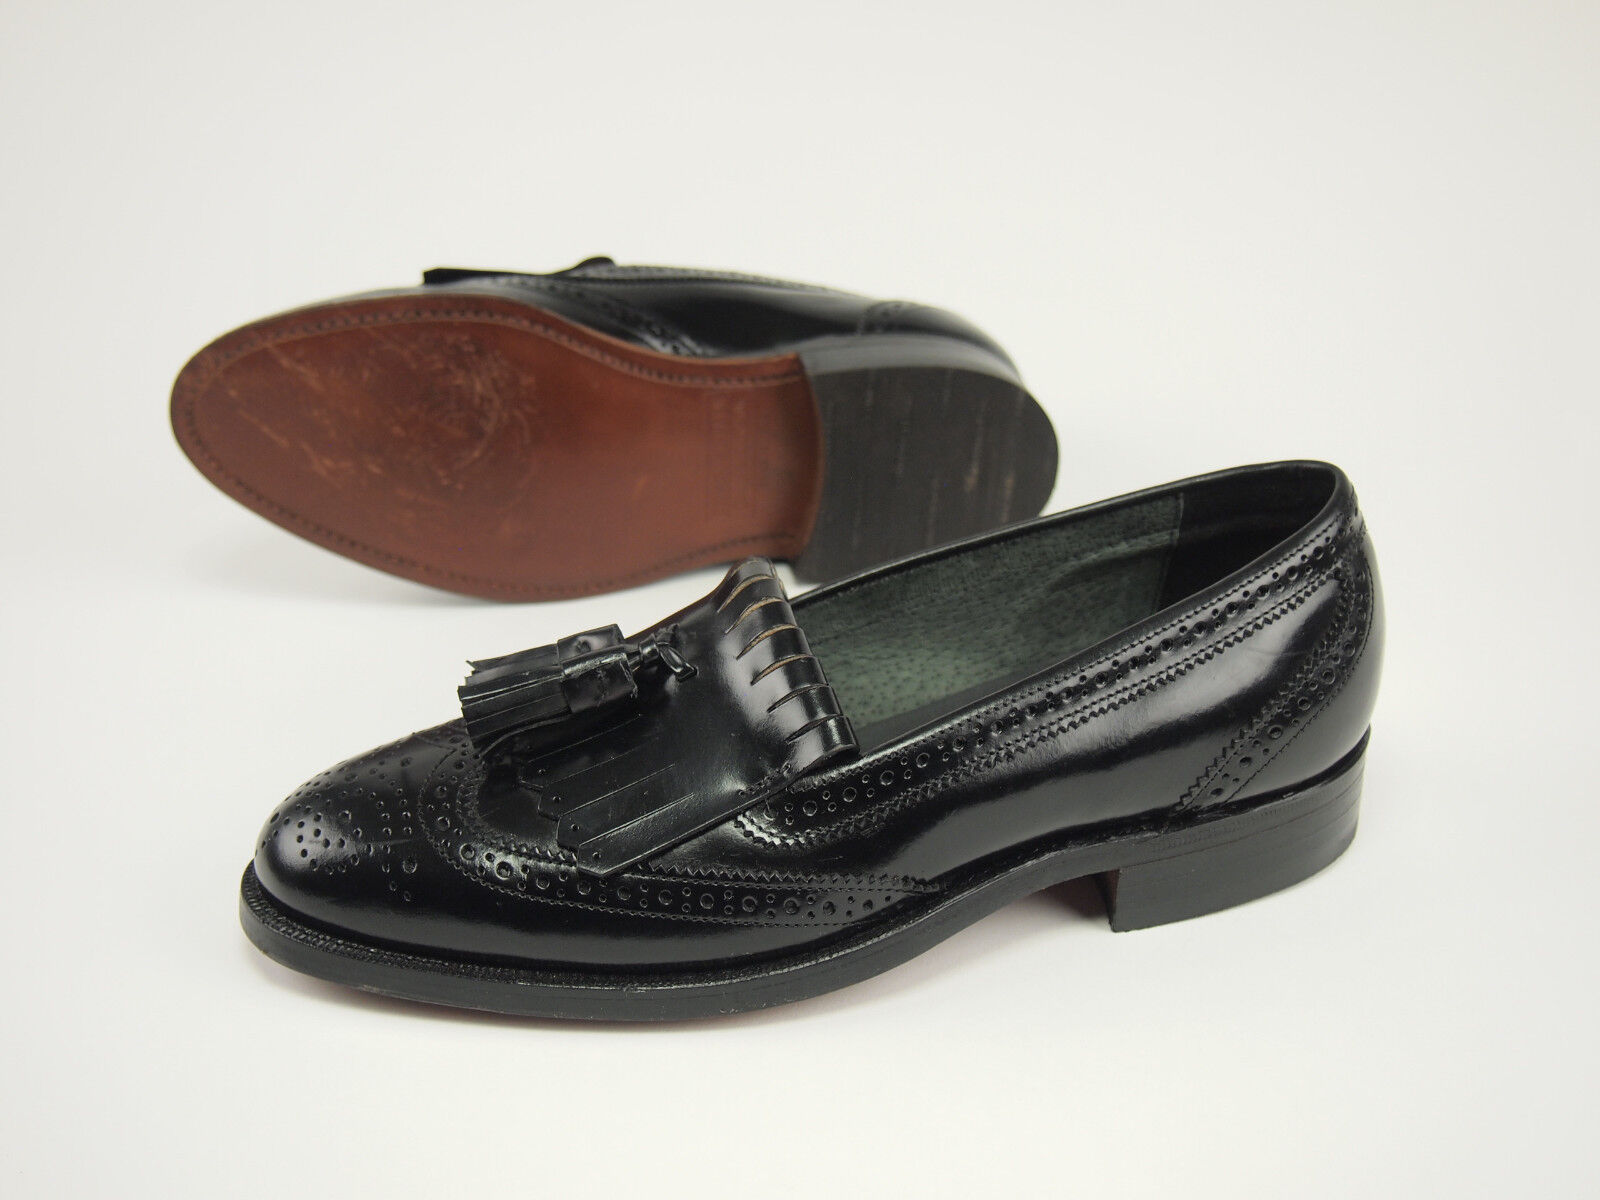 1980s STAFFORD Comfort Plus Vintage Vintage Vintage Wingtip Brogue Slip-on schuhe Loafer 6 - 6.5 5b3bca